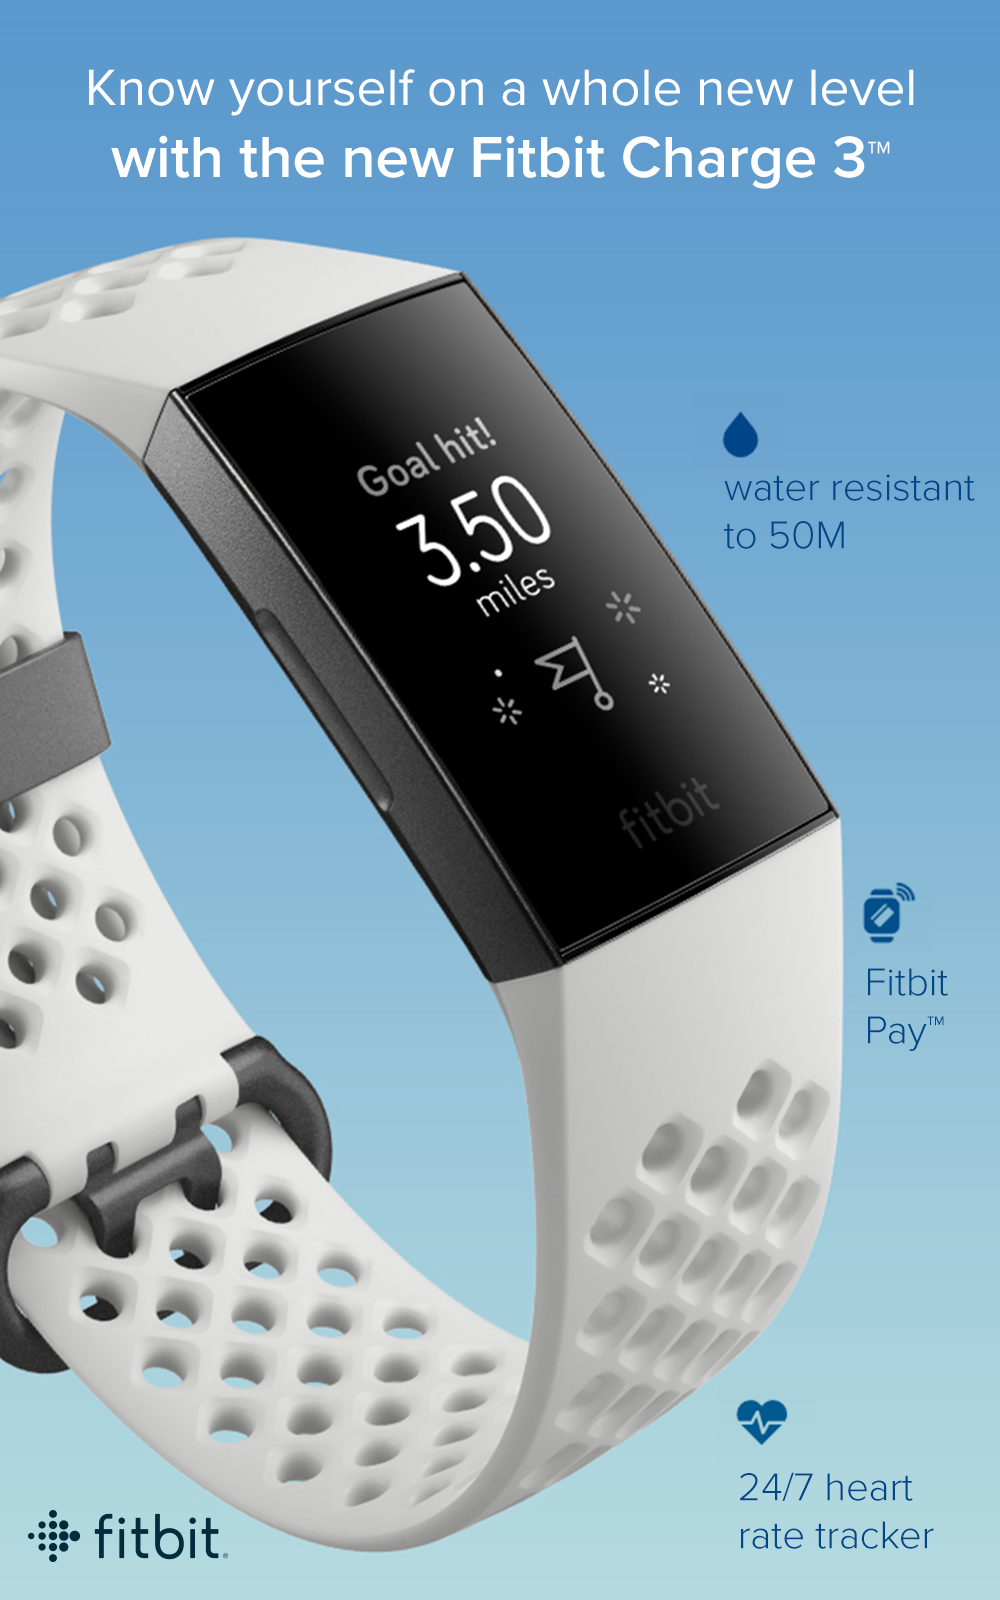 The new Fitbit Charge 3 features 24/7 heart rate so you can track